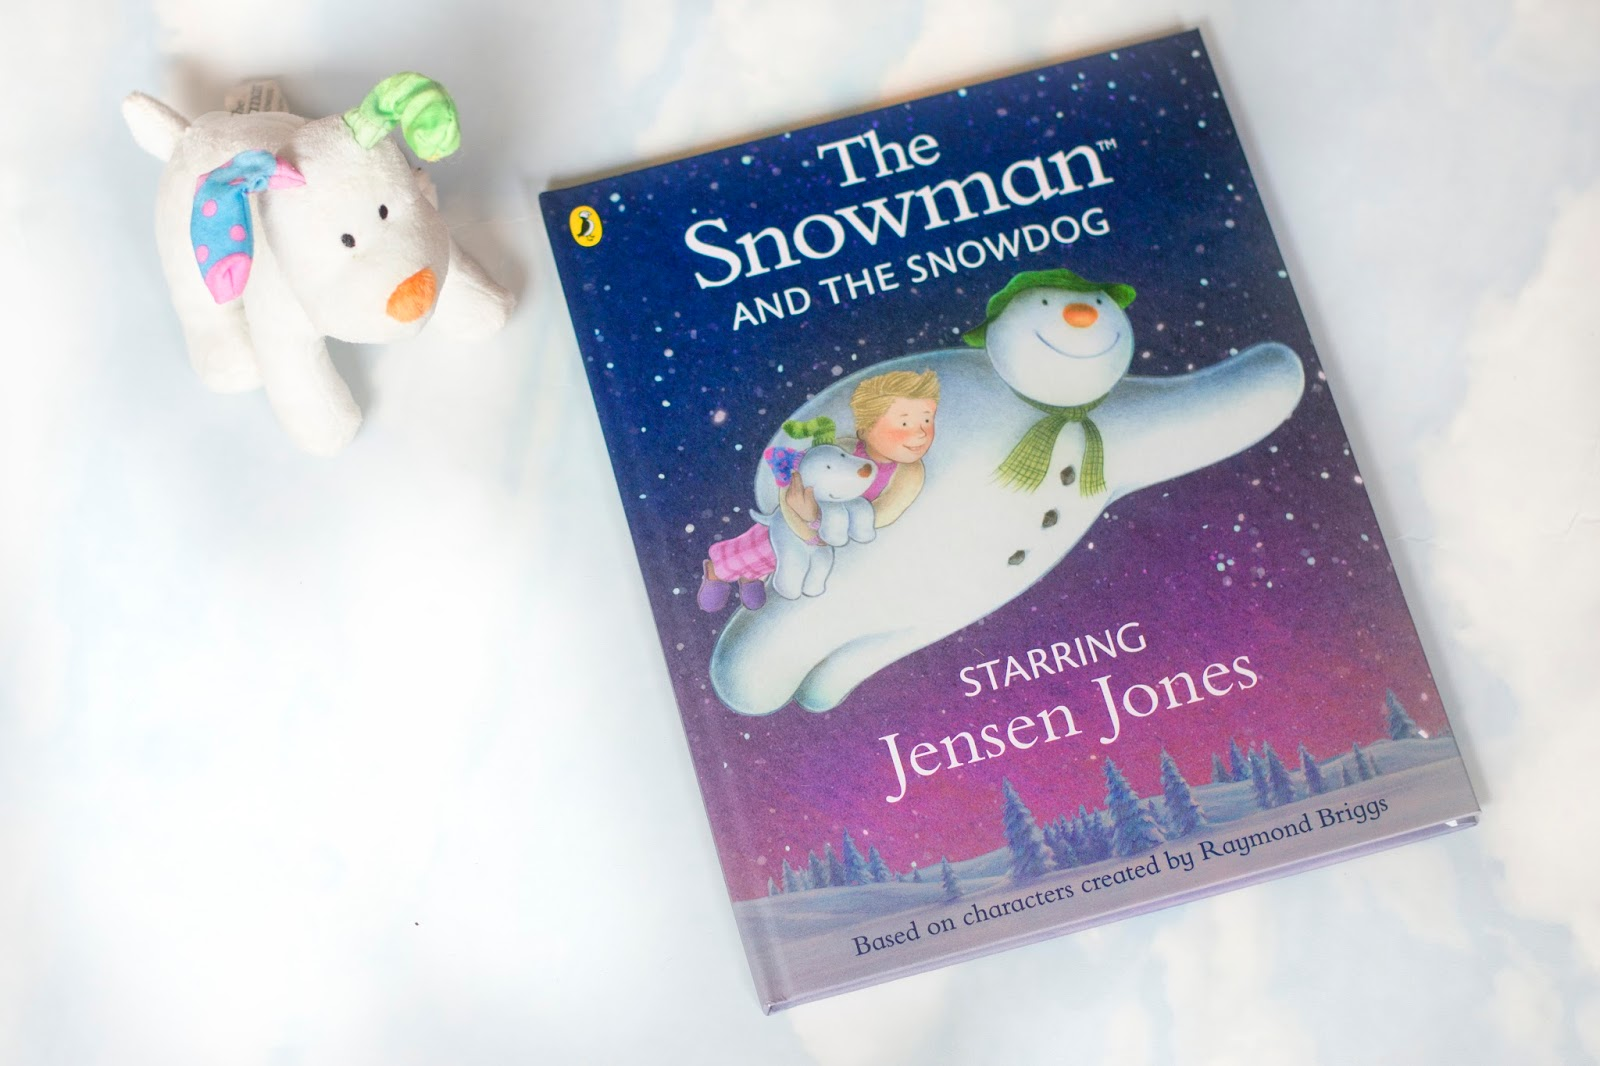 THE SNOWMAN AND THE SNOWDOG: STARRING JENSEN JONES [REVIEW]